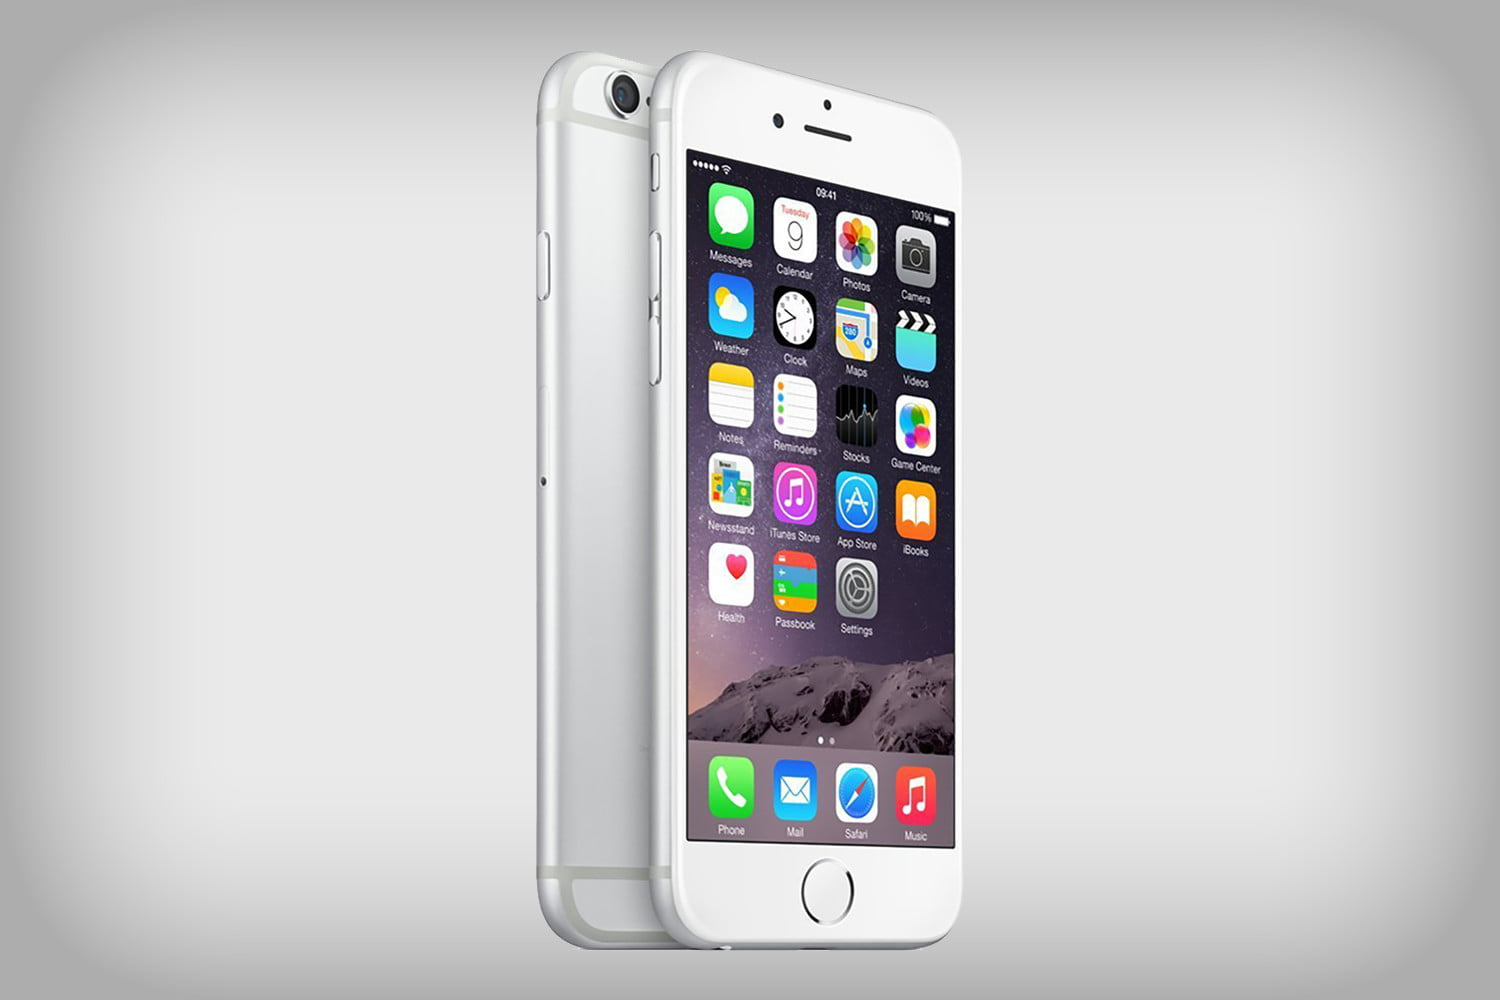 iphone 5 refurbished buy a professionally refurbished iphone 6 and save 100 11030